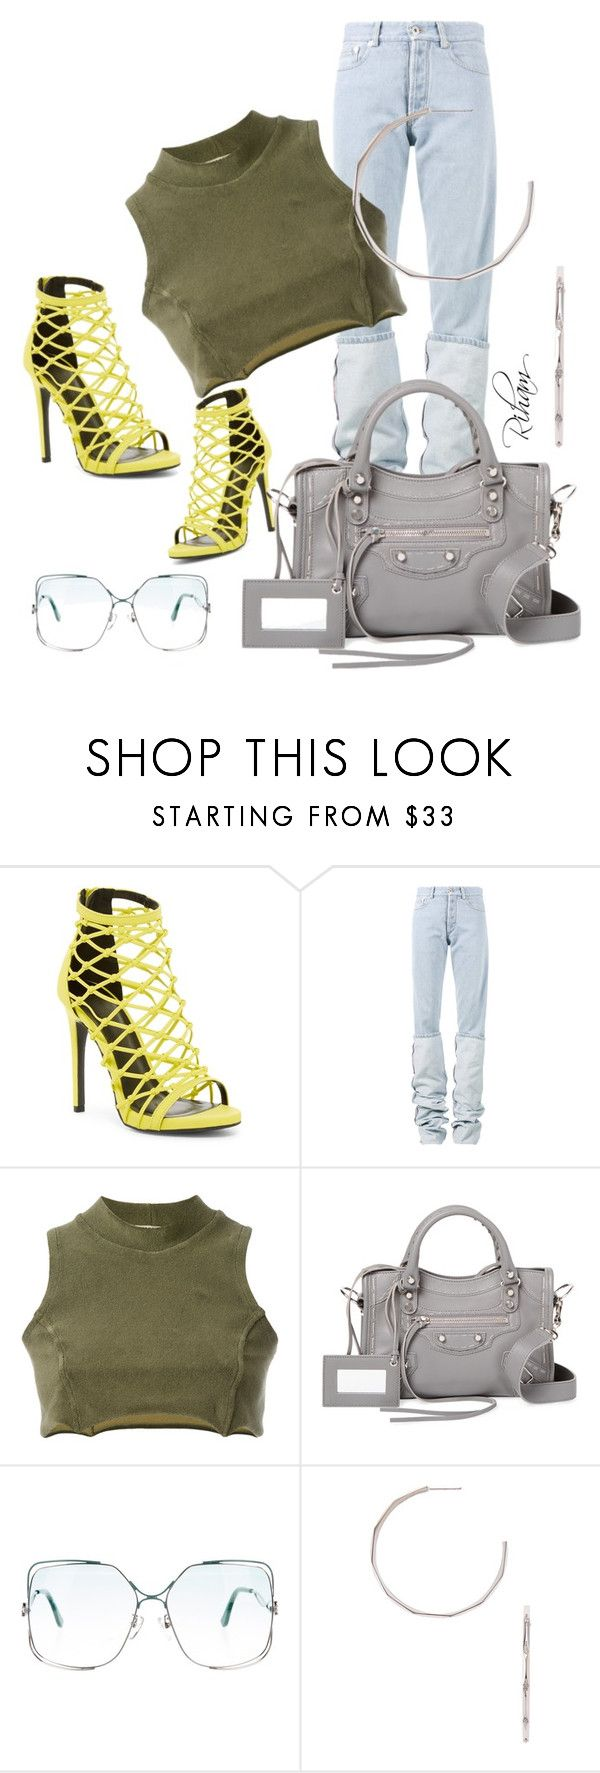 """Untitled #530"" by cremebruleelatte ❤ liked on Polyvore featuring Wild Diva, Y/Project, Yeezy by Kanye West, Balenciaga and Melissa Kaye"